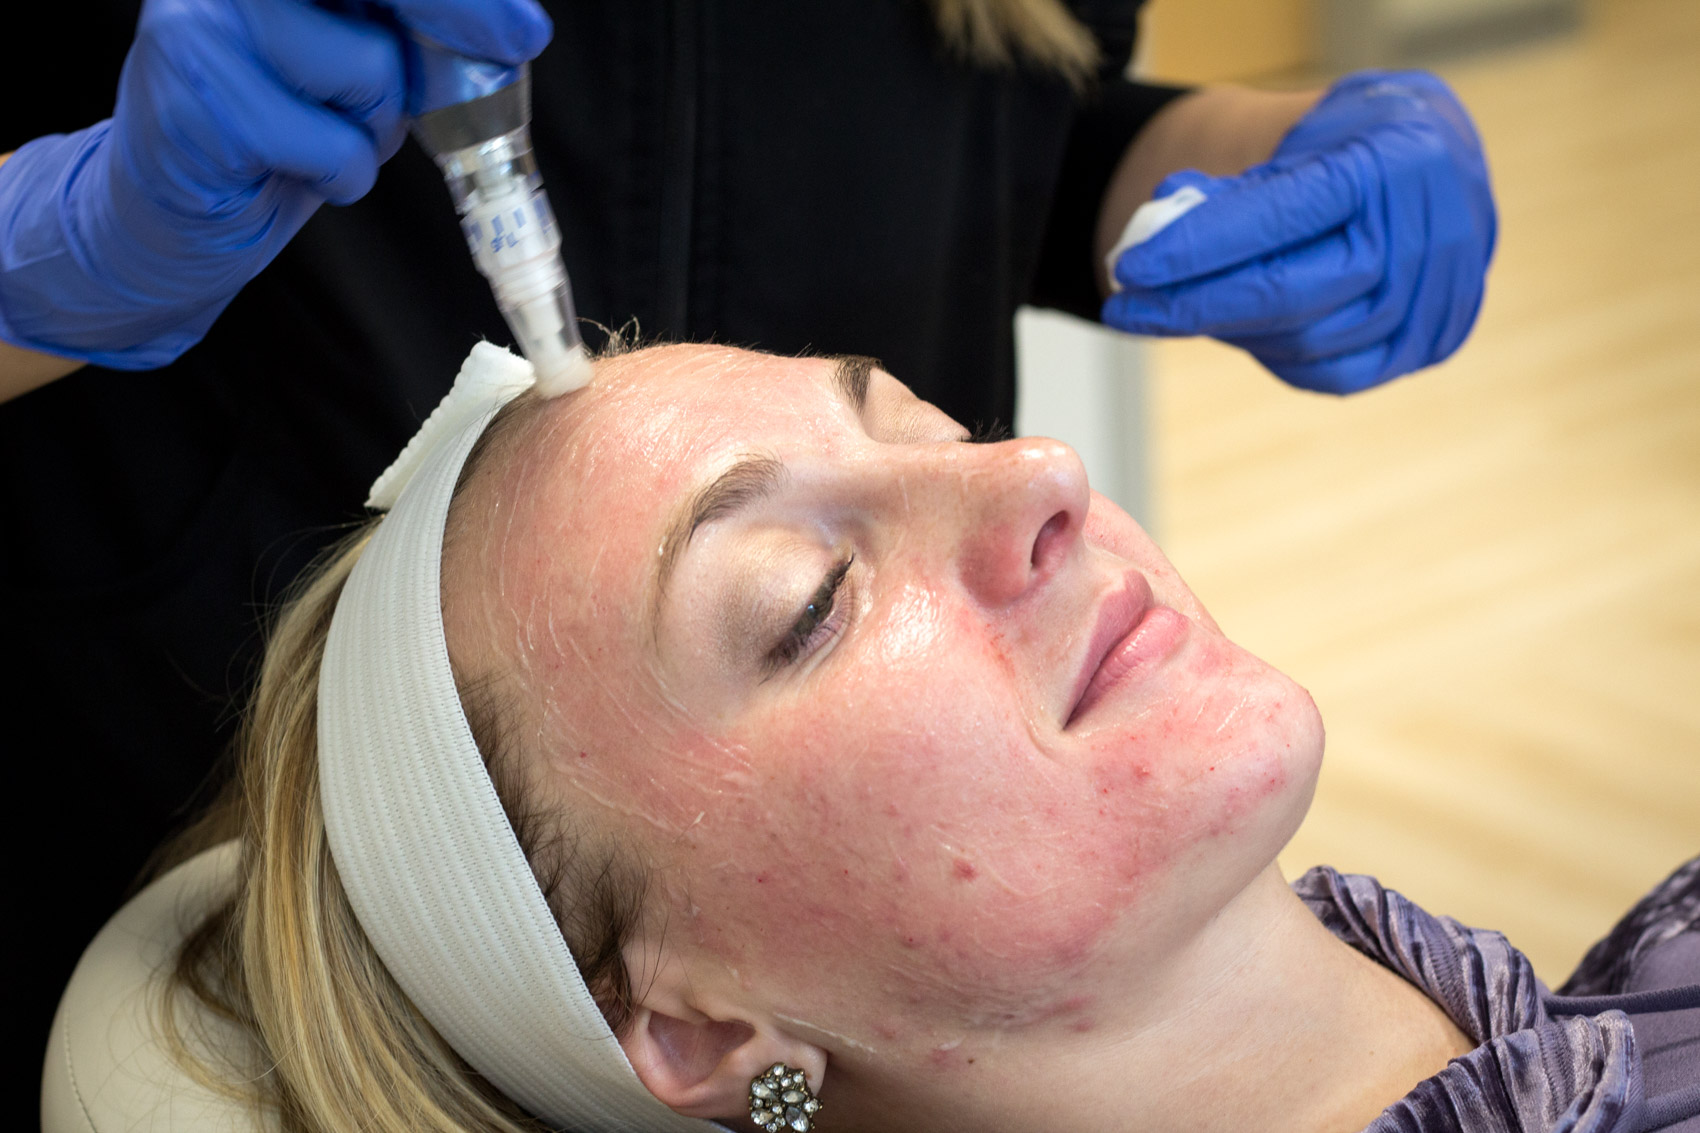 I tried it: A review of my microneedling treatments with the SkinPen at Sistine Plastic Surgery in Pittsburgh. Microneedling is a skincare procedure that has been praised for its anti-aging benefits and is also known to help with hyperpigmentation. Read the post to read more on microneedling for acne scars and if it worked for me.